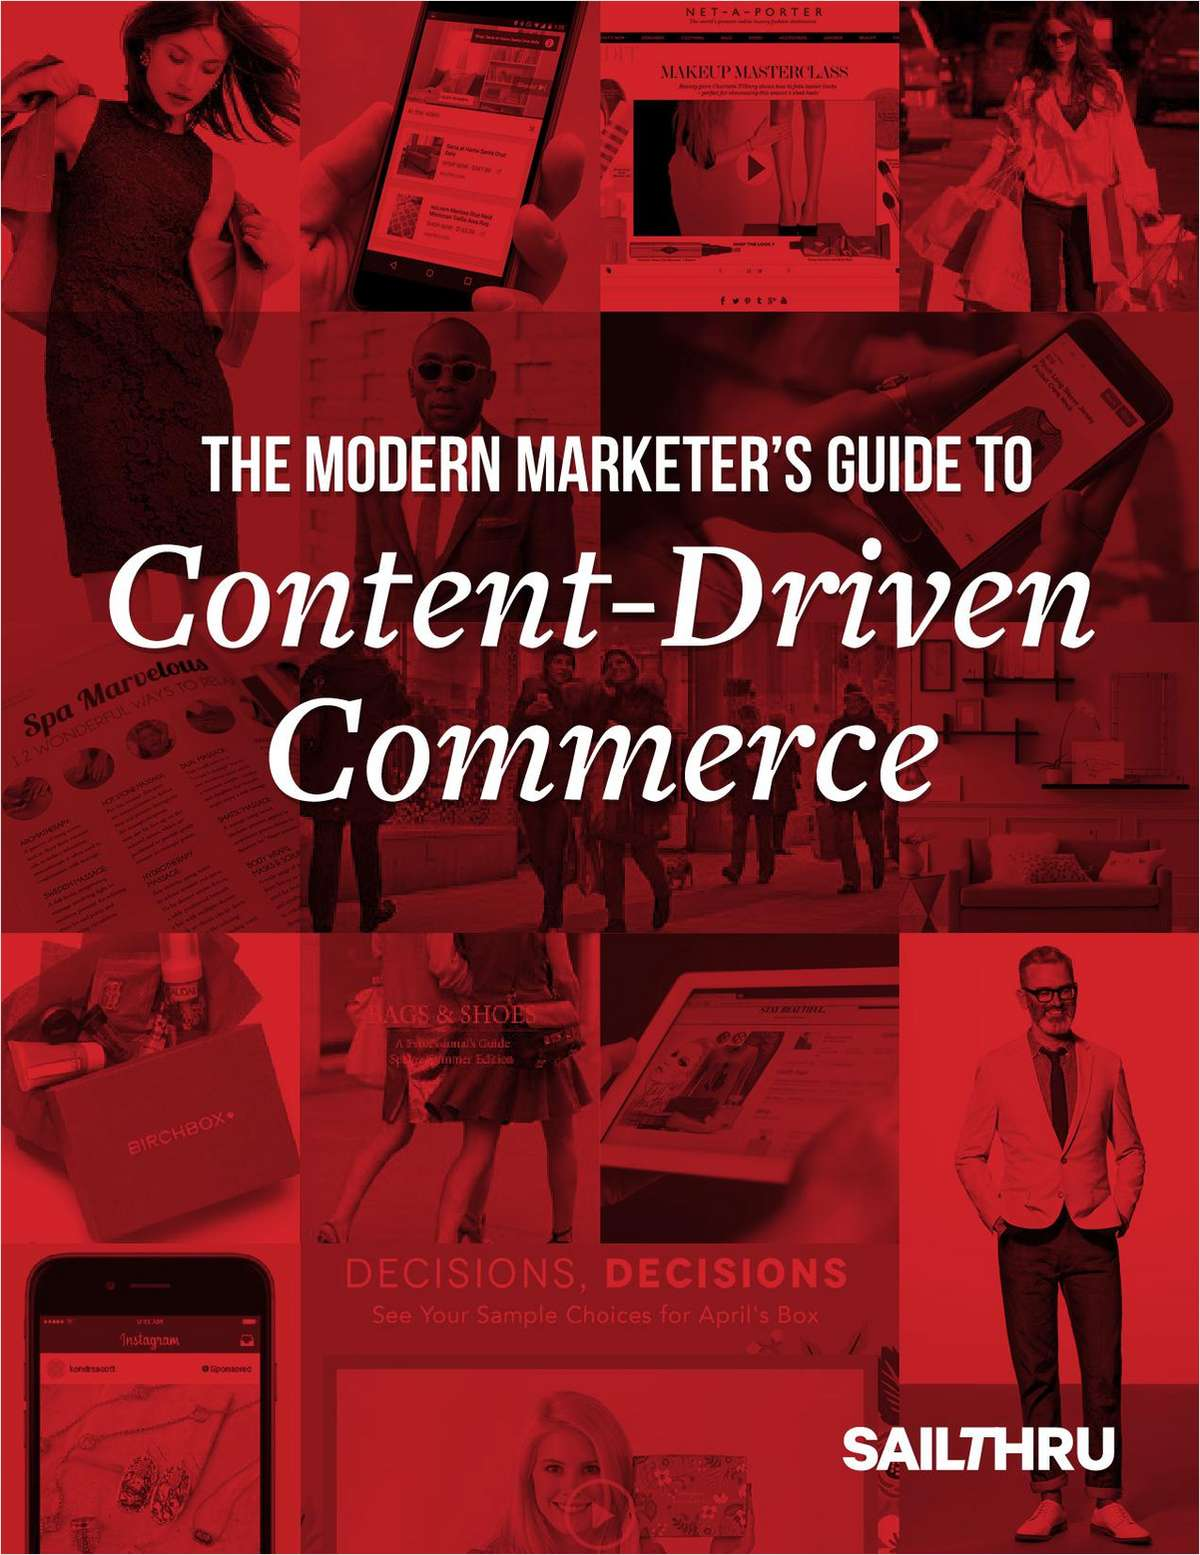 The Modern Marketer's Guide to Content-Driven Commerce